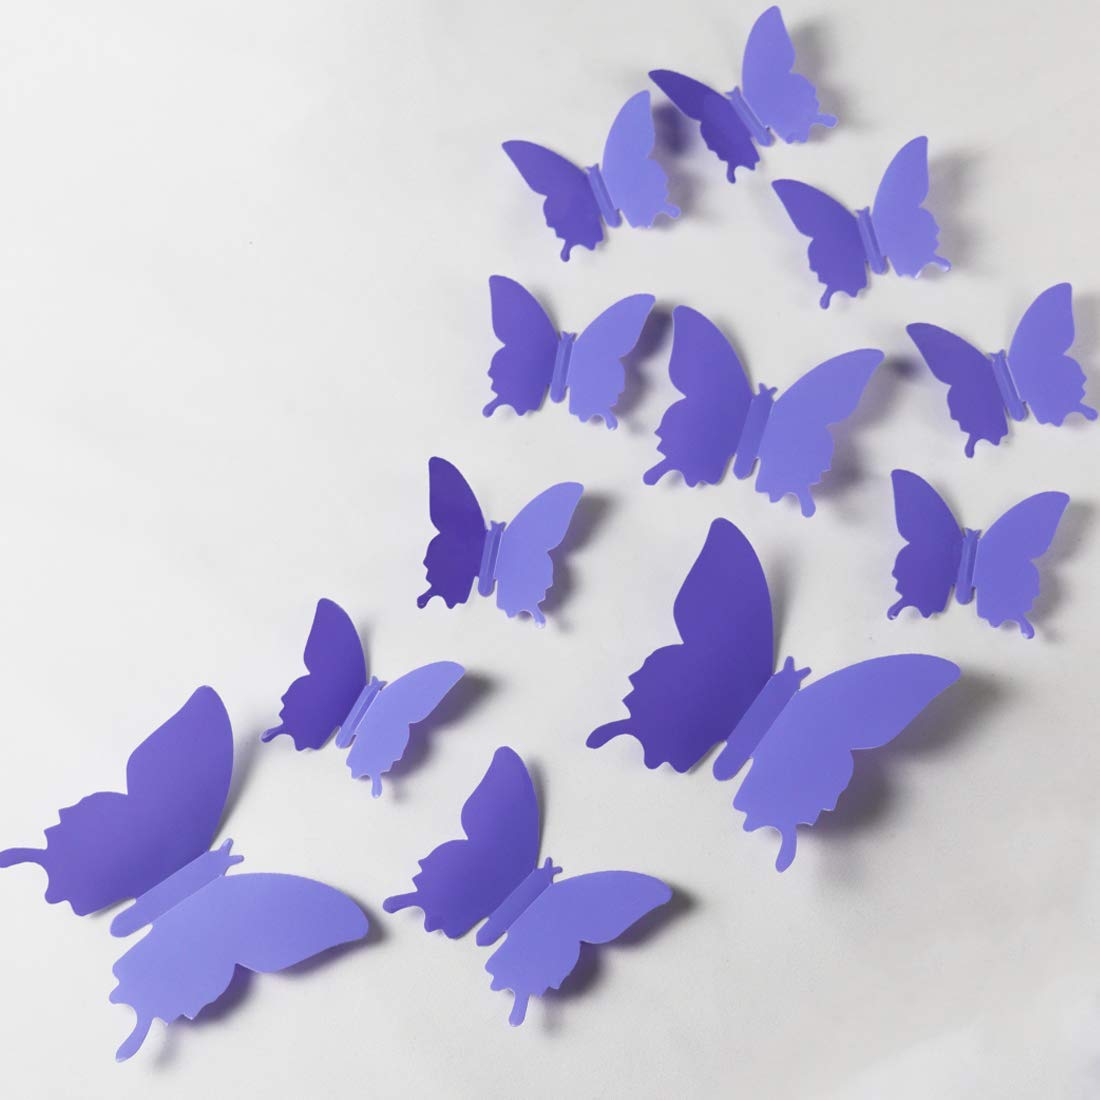 24pcs 3D Butterfly Removable Mural Stickers Wall Stickers Decal for Home and Room Decoration (Indigo)